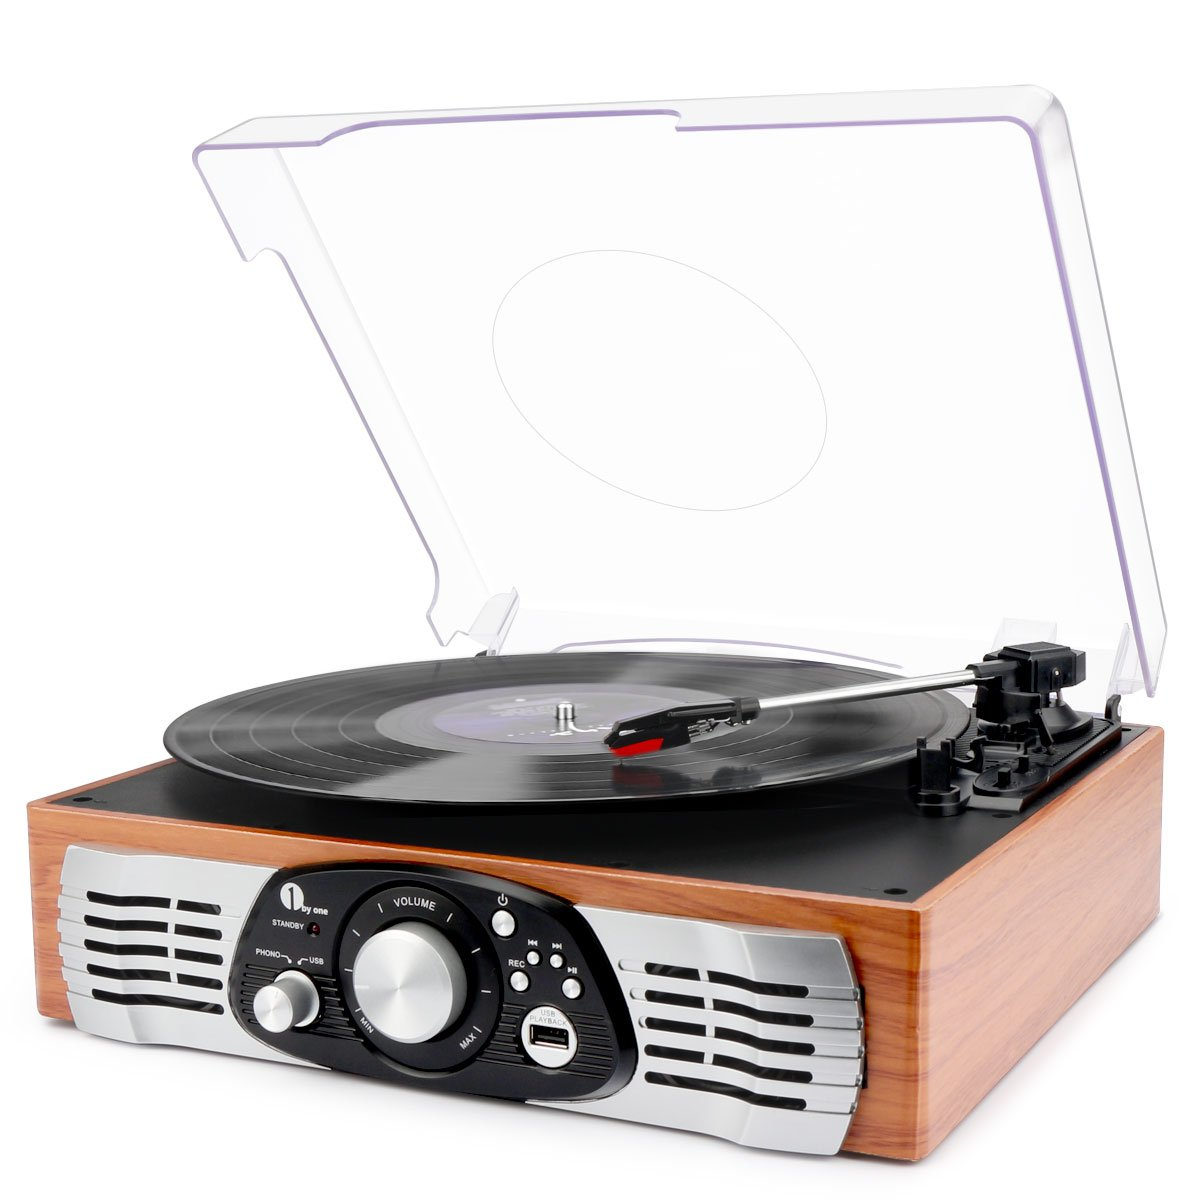 1byone Belt-Drive 3-Speed Stereo Turntable with Built in Speakers, Natural Wood (471NA-0003)